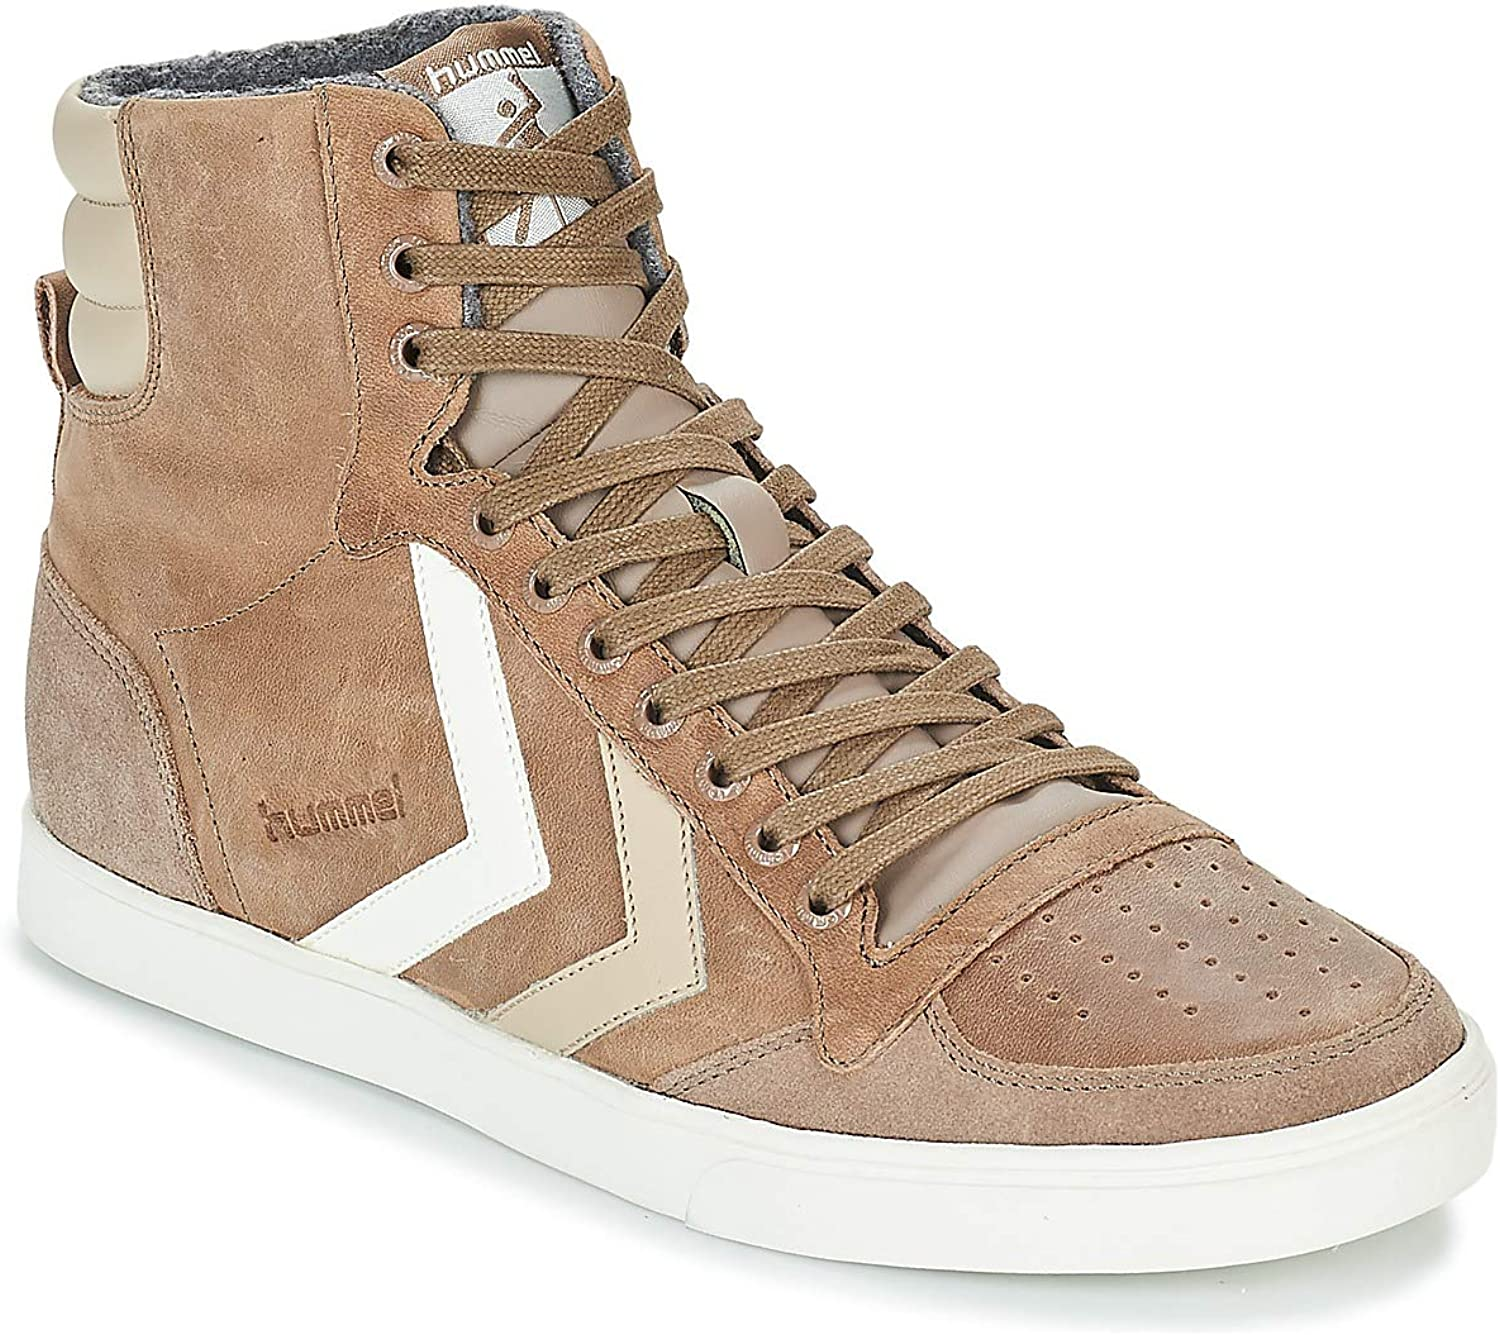 Hummel shoes montantes Slimmer stadil duo oiled